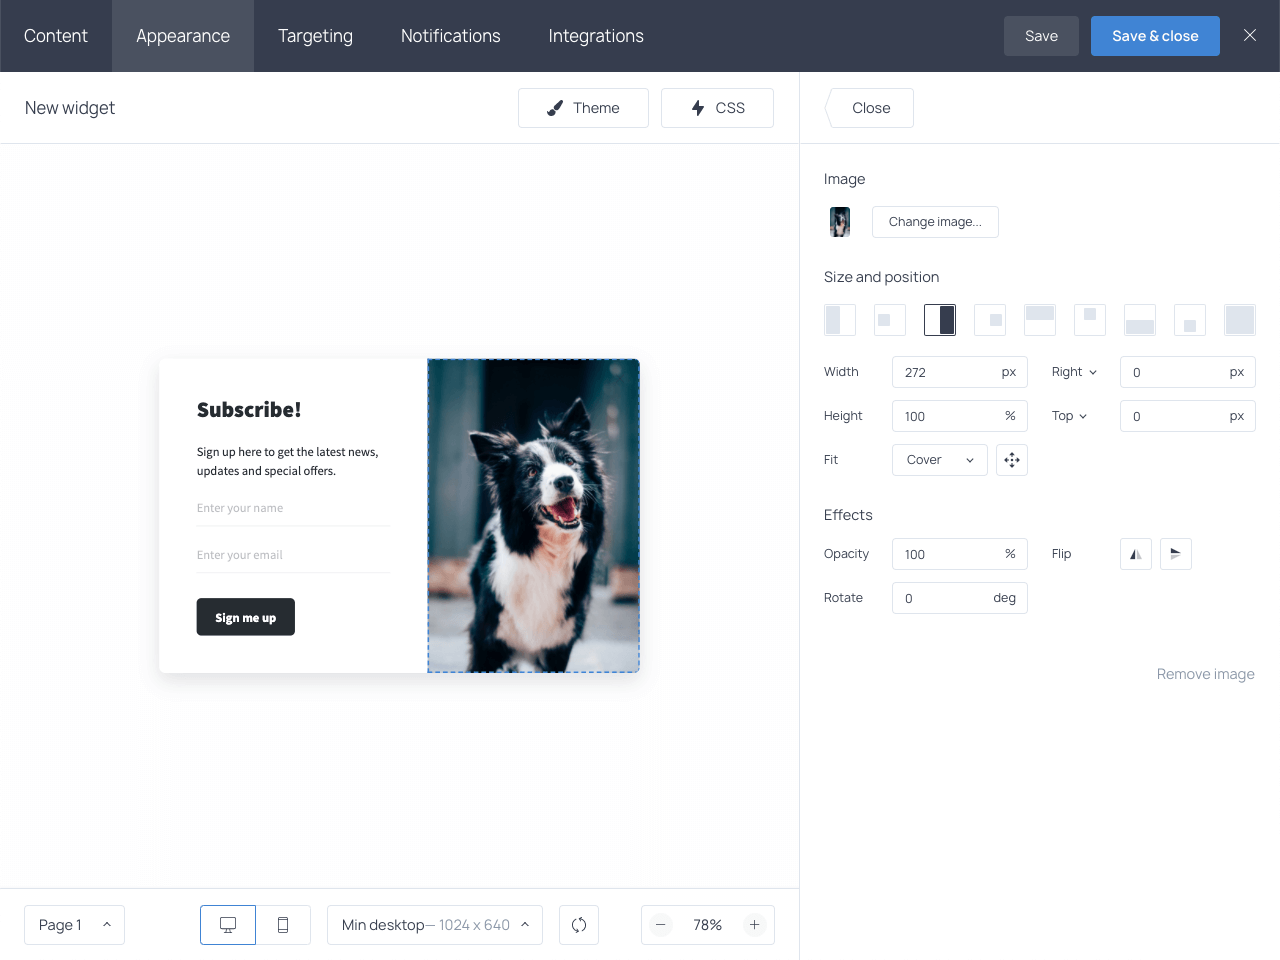 Showcasing user-friendly image settings in the Getsitecontrol dashboard